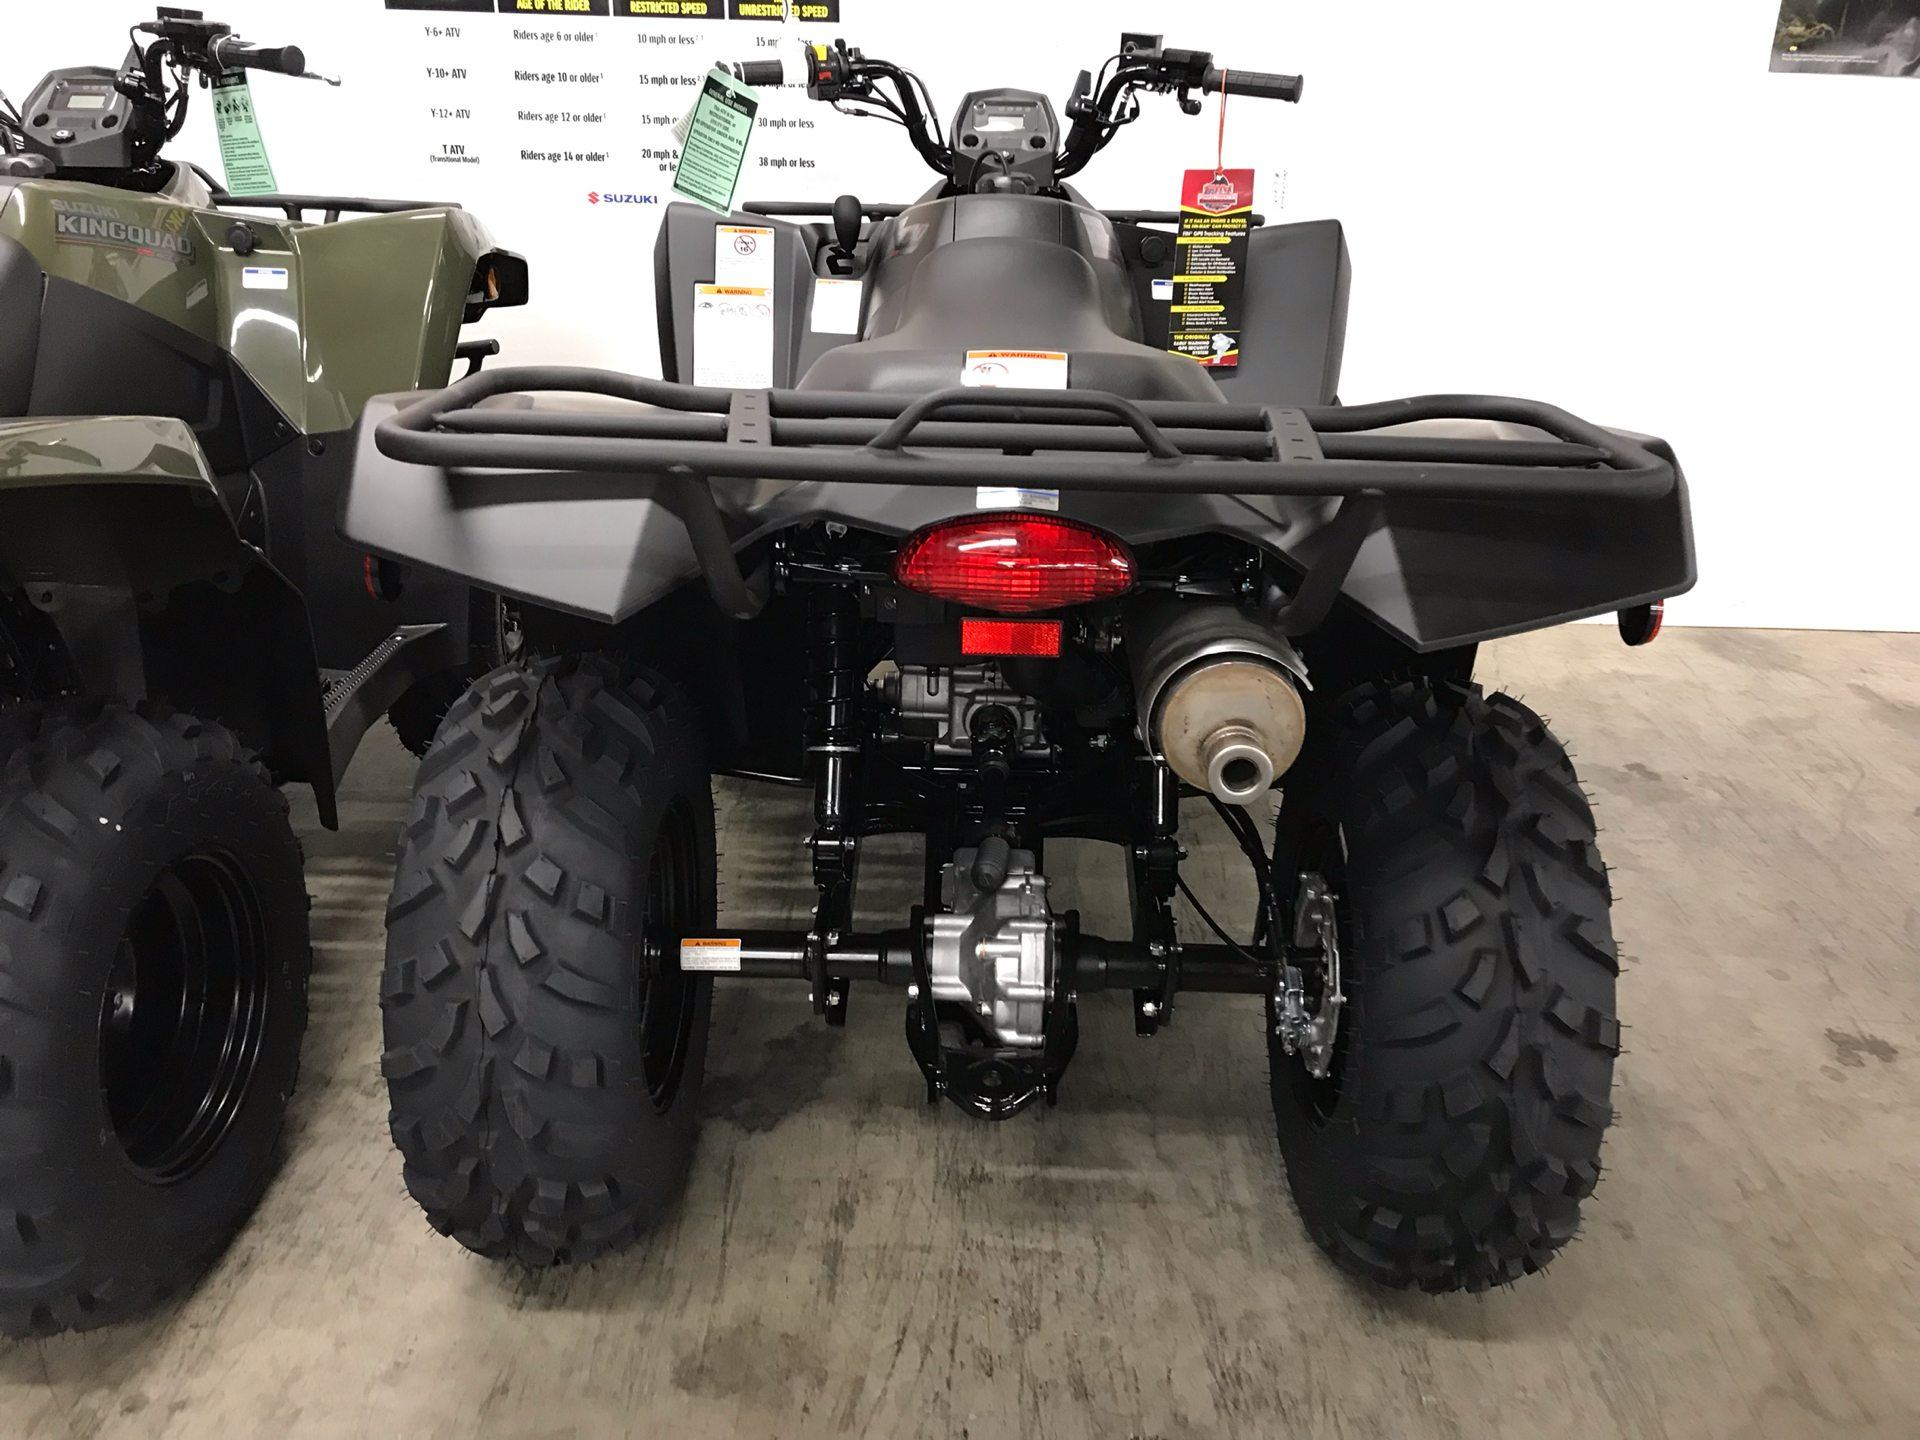 2019 Suzuki KingQuad 400ASi+ in Sanford, North Carolina - Photo 3